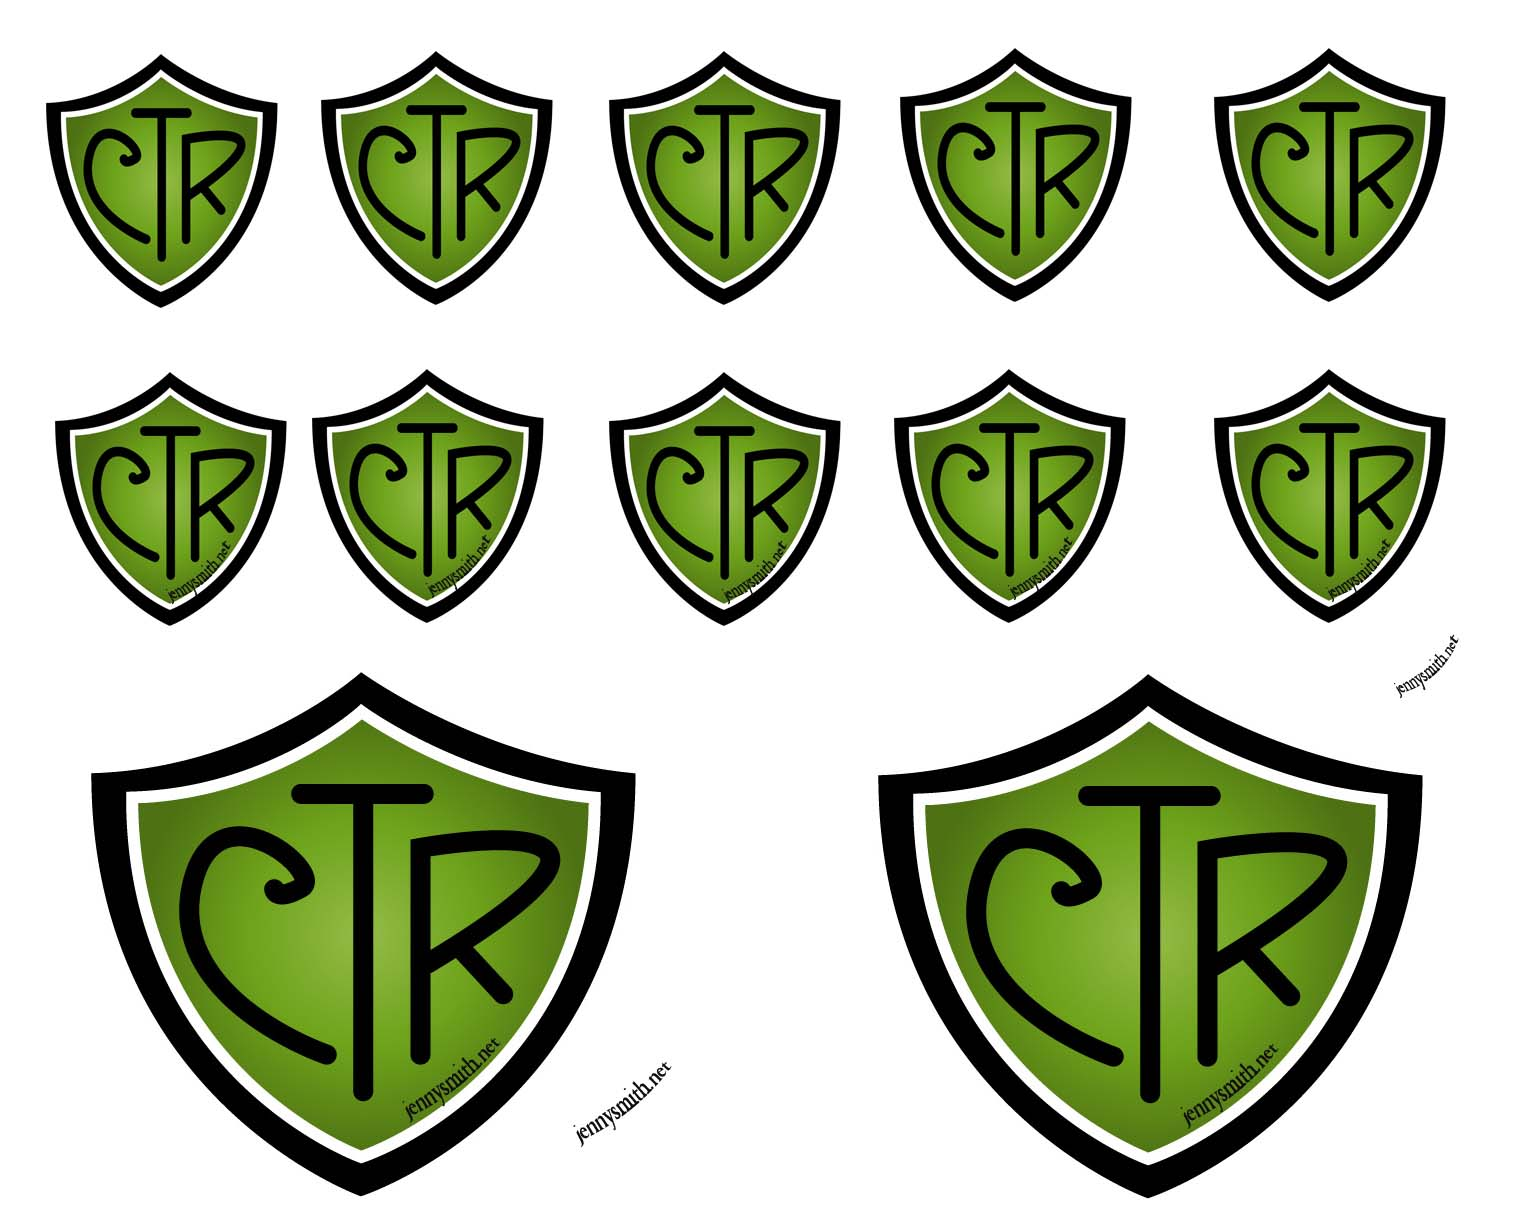 picture relating to Ctr Shield Printable identify Absolutely free Lds Clipart Ctr Defend Cost-free obtain ideal Free of charge Lds